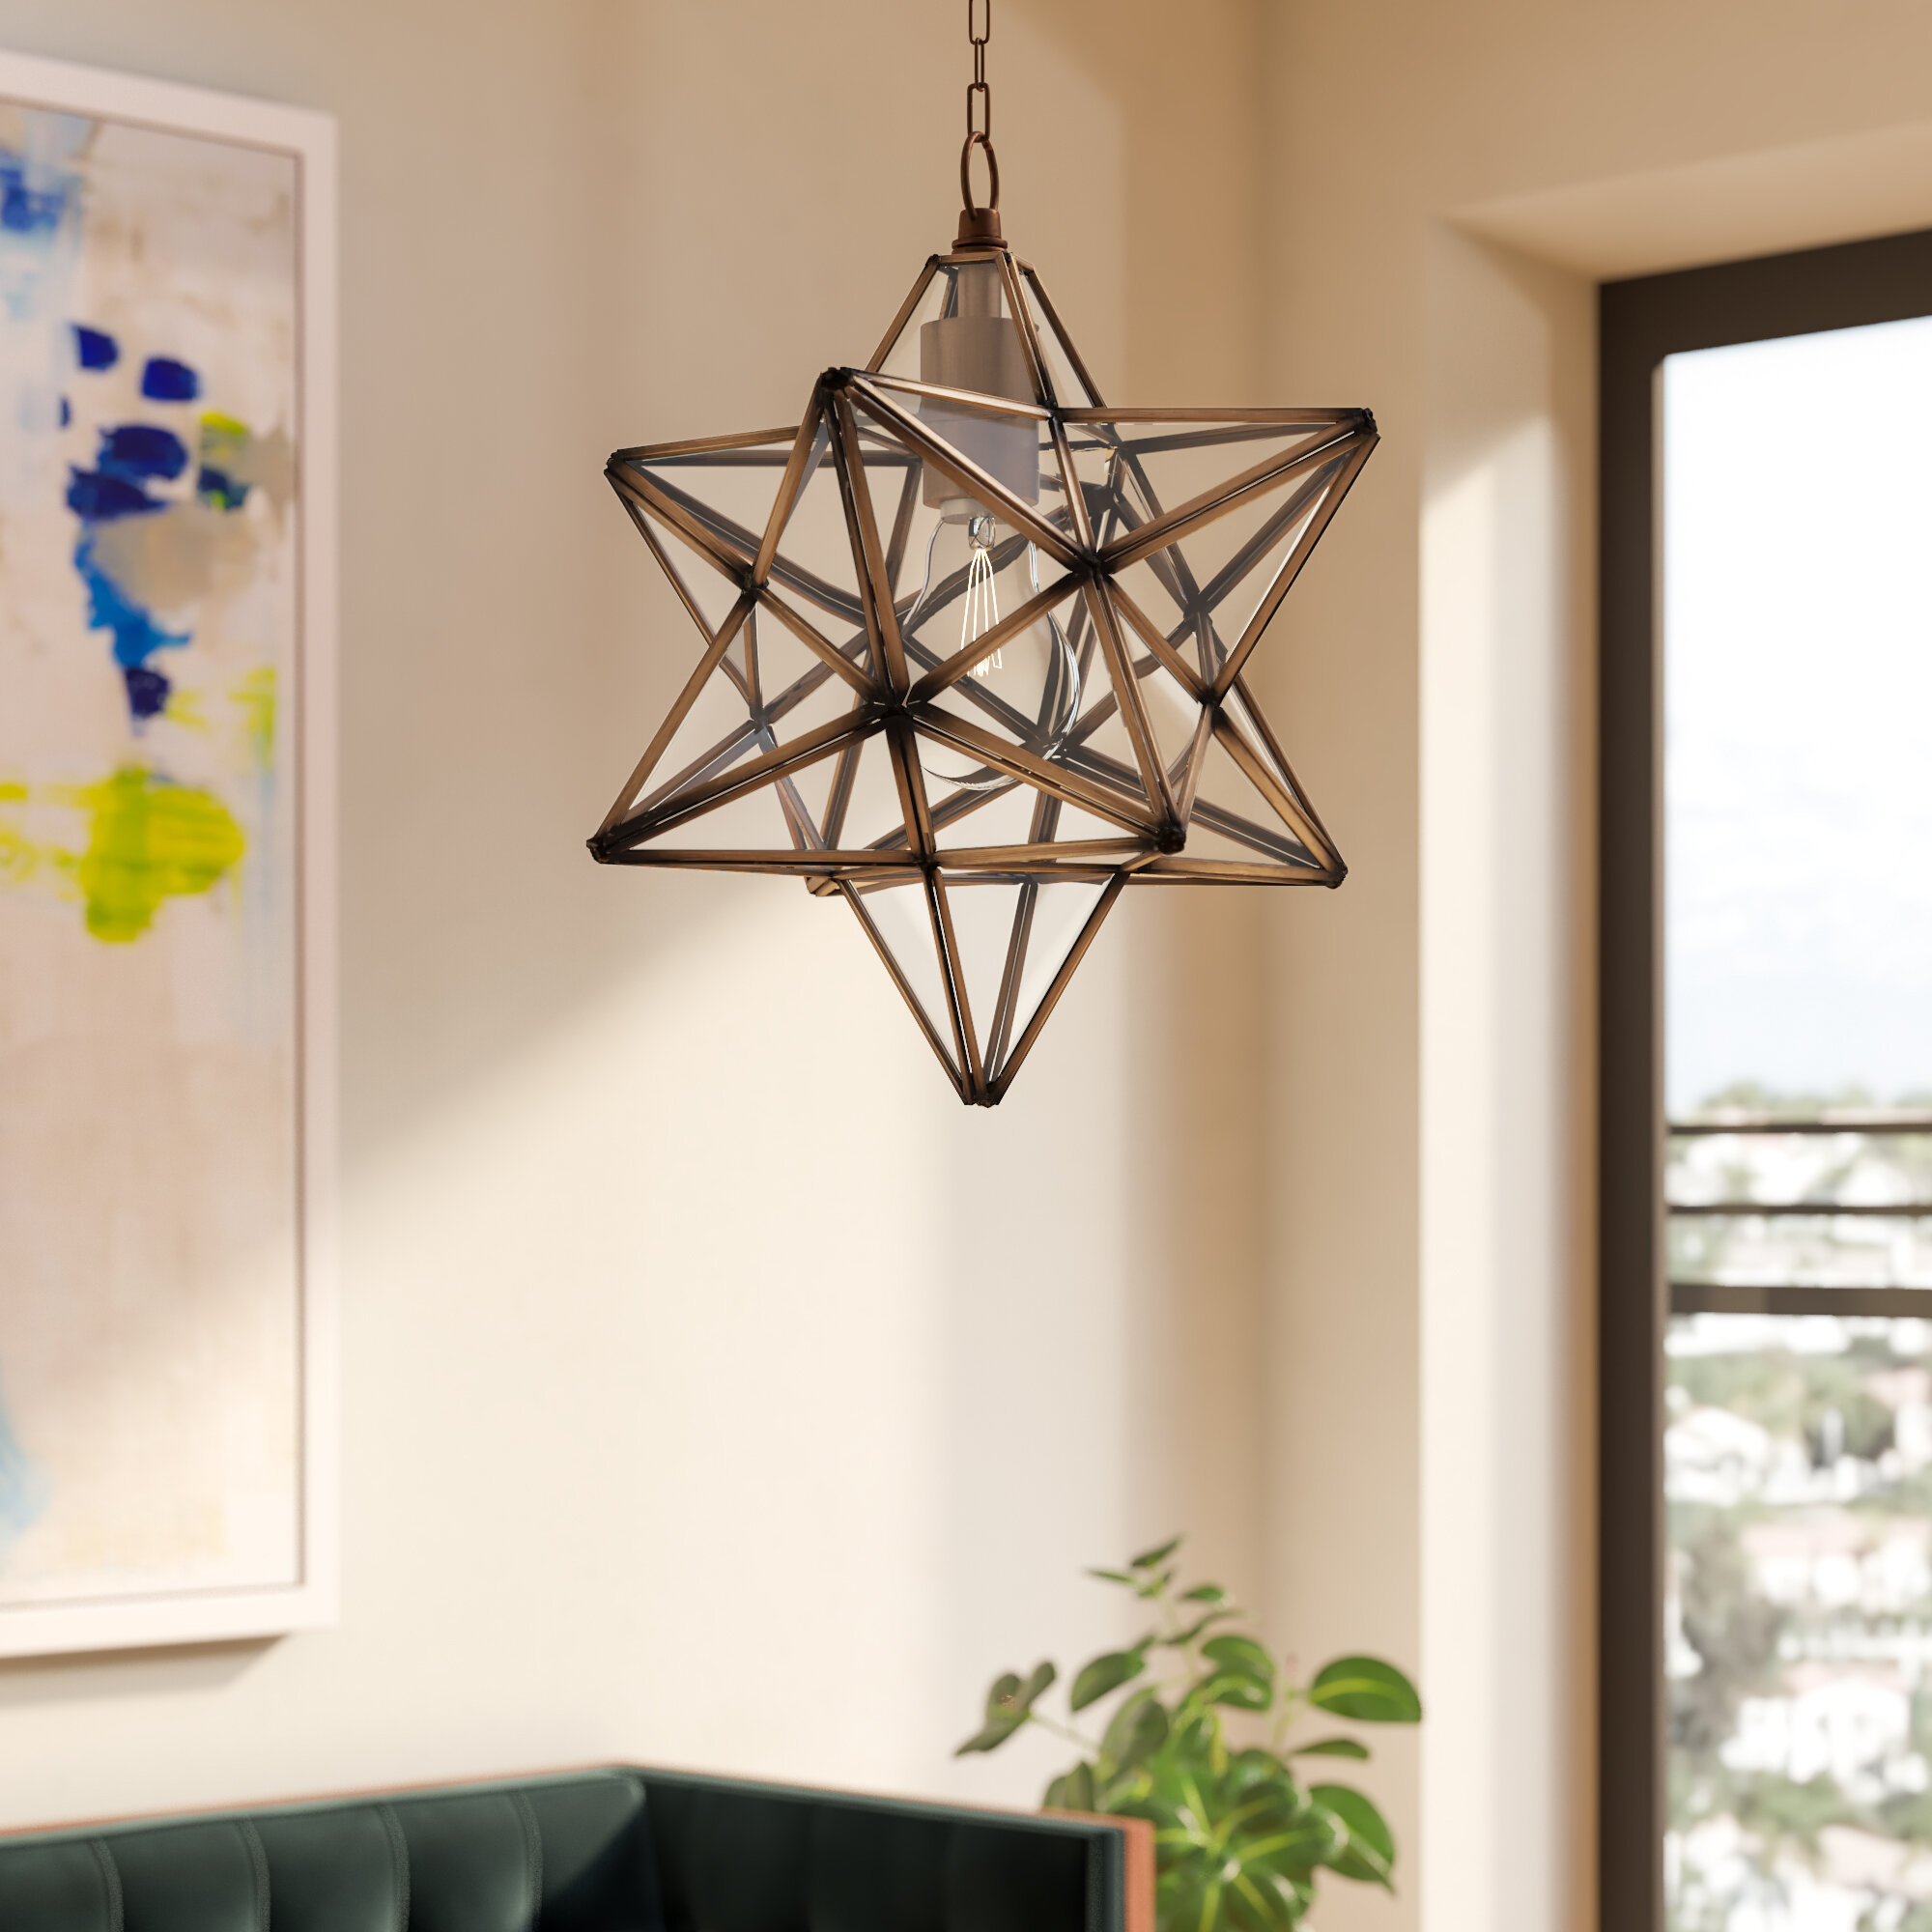 Shuler 1-Light Single Star Pendant with 1-Light Single Star Pendants (Image 29 of 30)